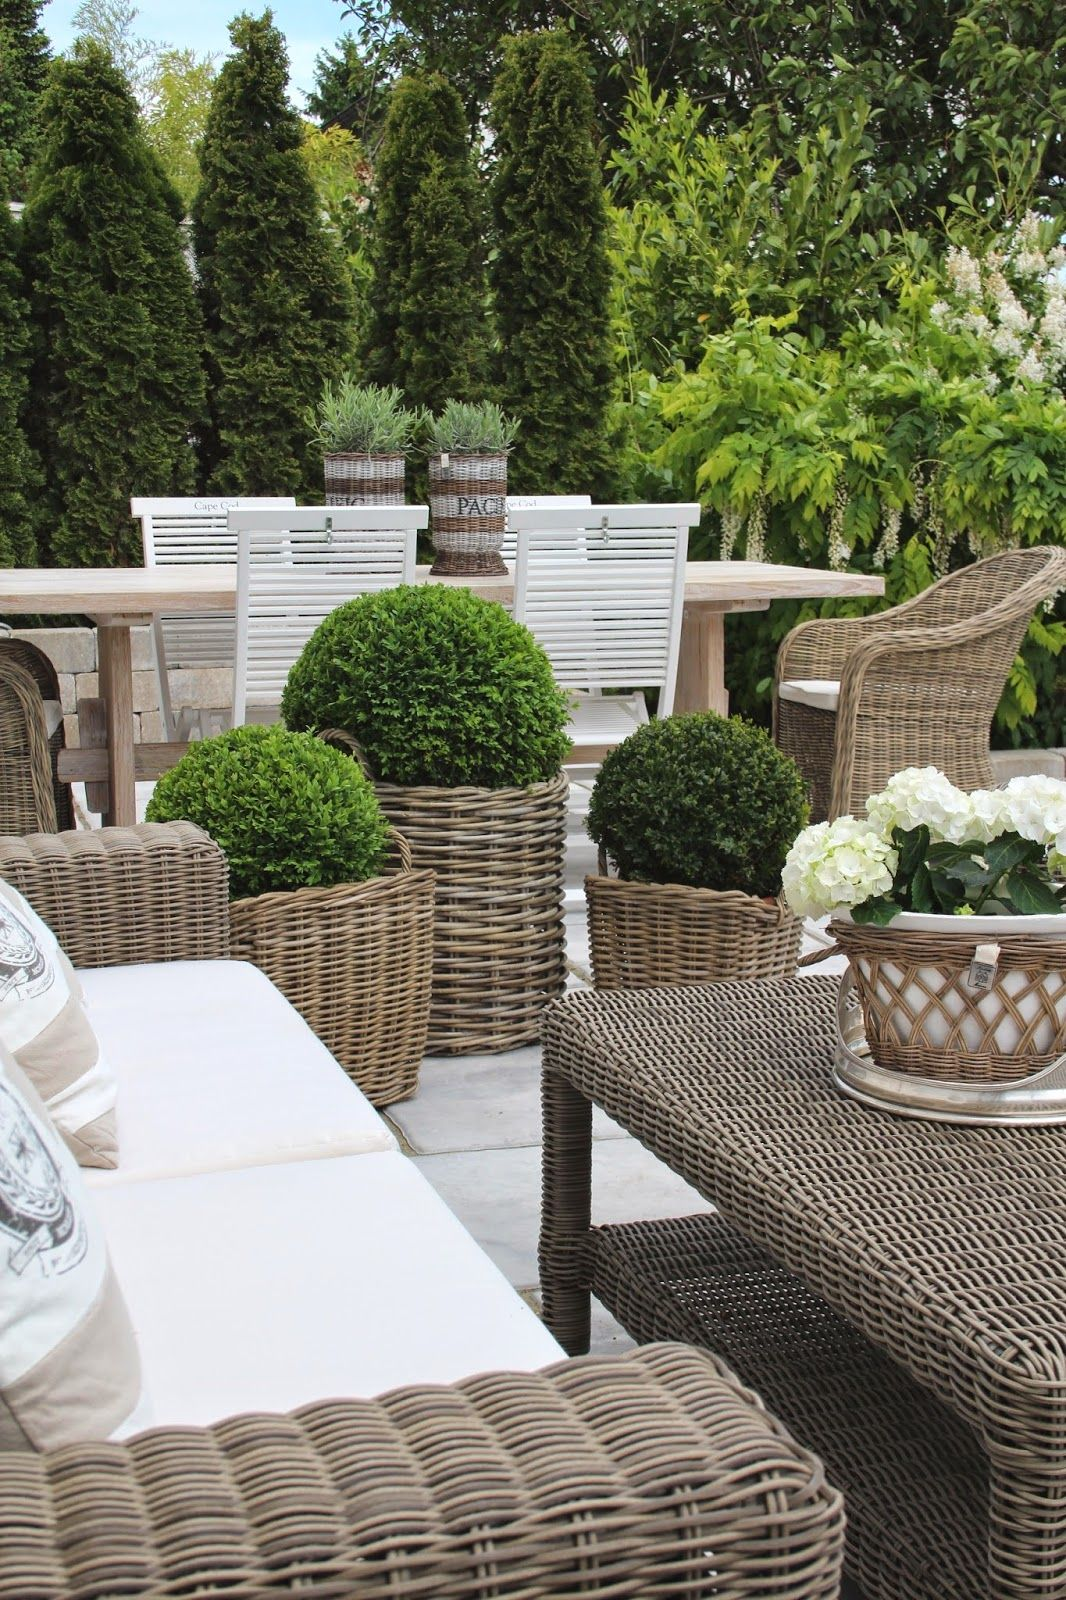 Rattanmöbel Terrasse Just Add Rattan Or Wicker Furniture For A Great Modern Outdoor